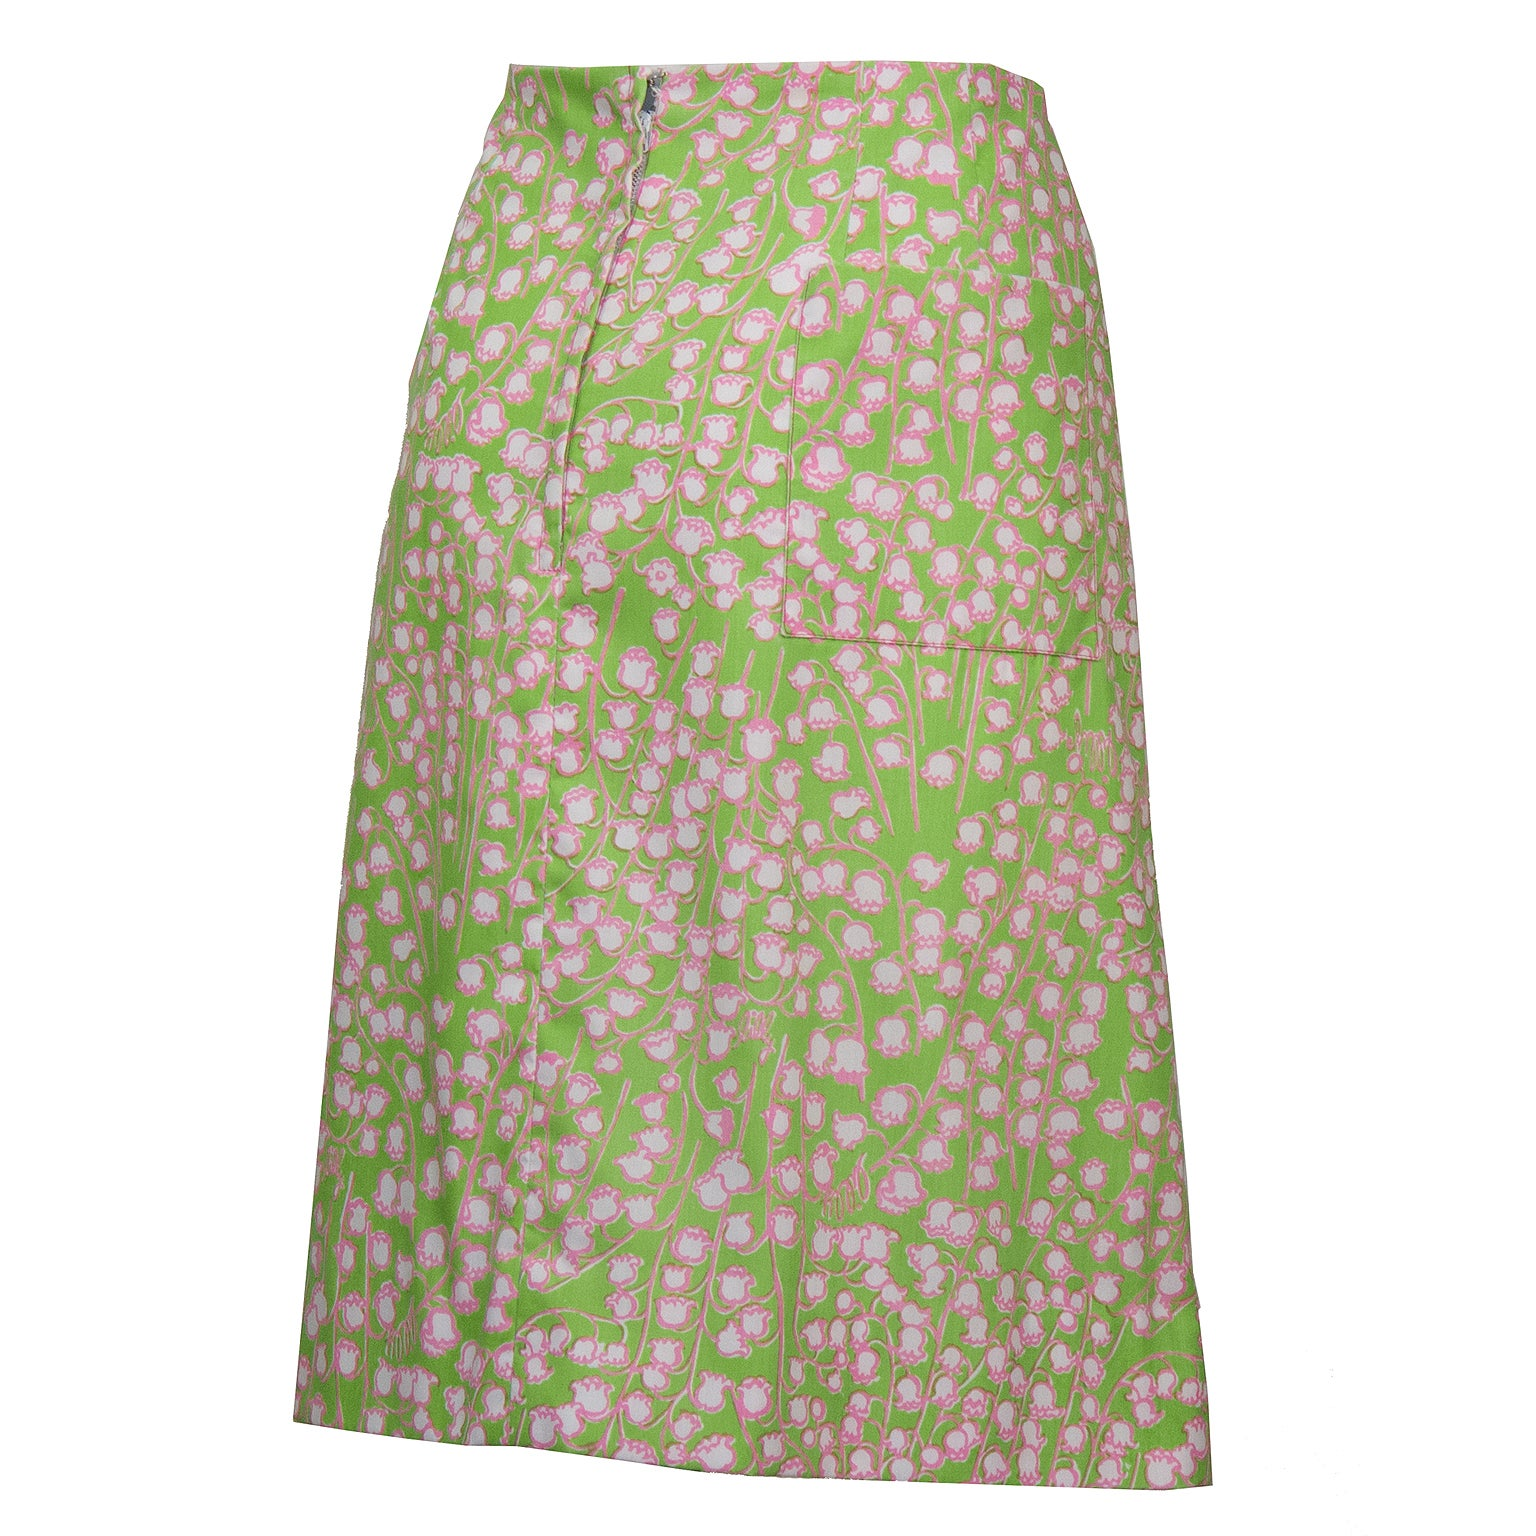 075720eaf2ca4 1960's Lilly Pulitzer Lime Green Lily Of The Valley Skirt